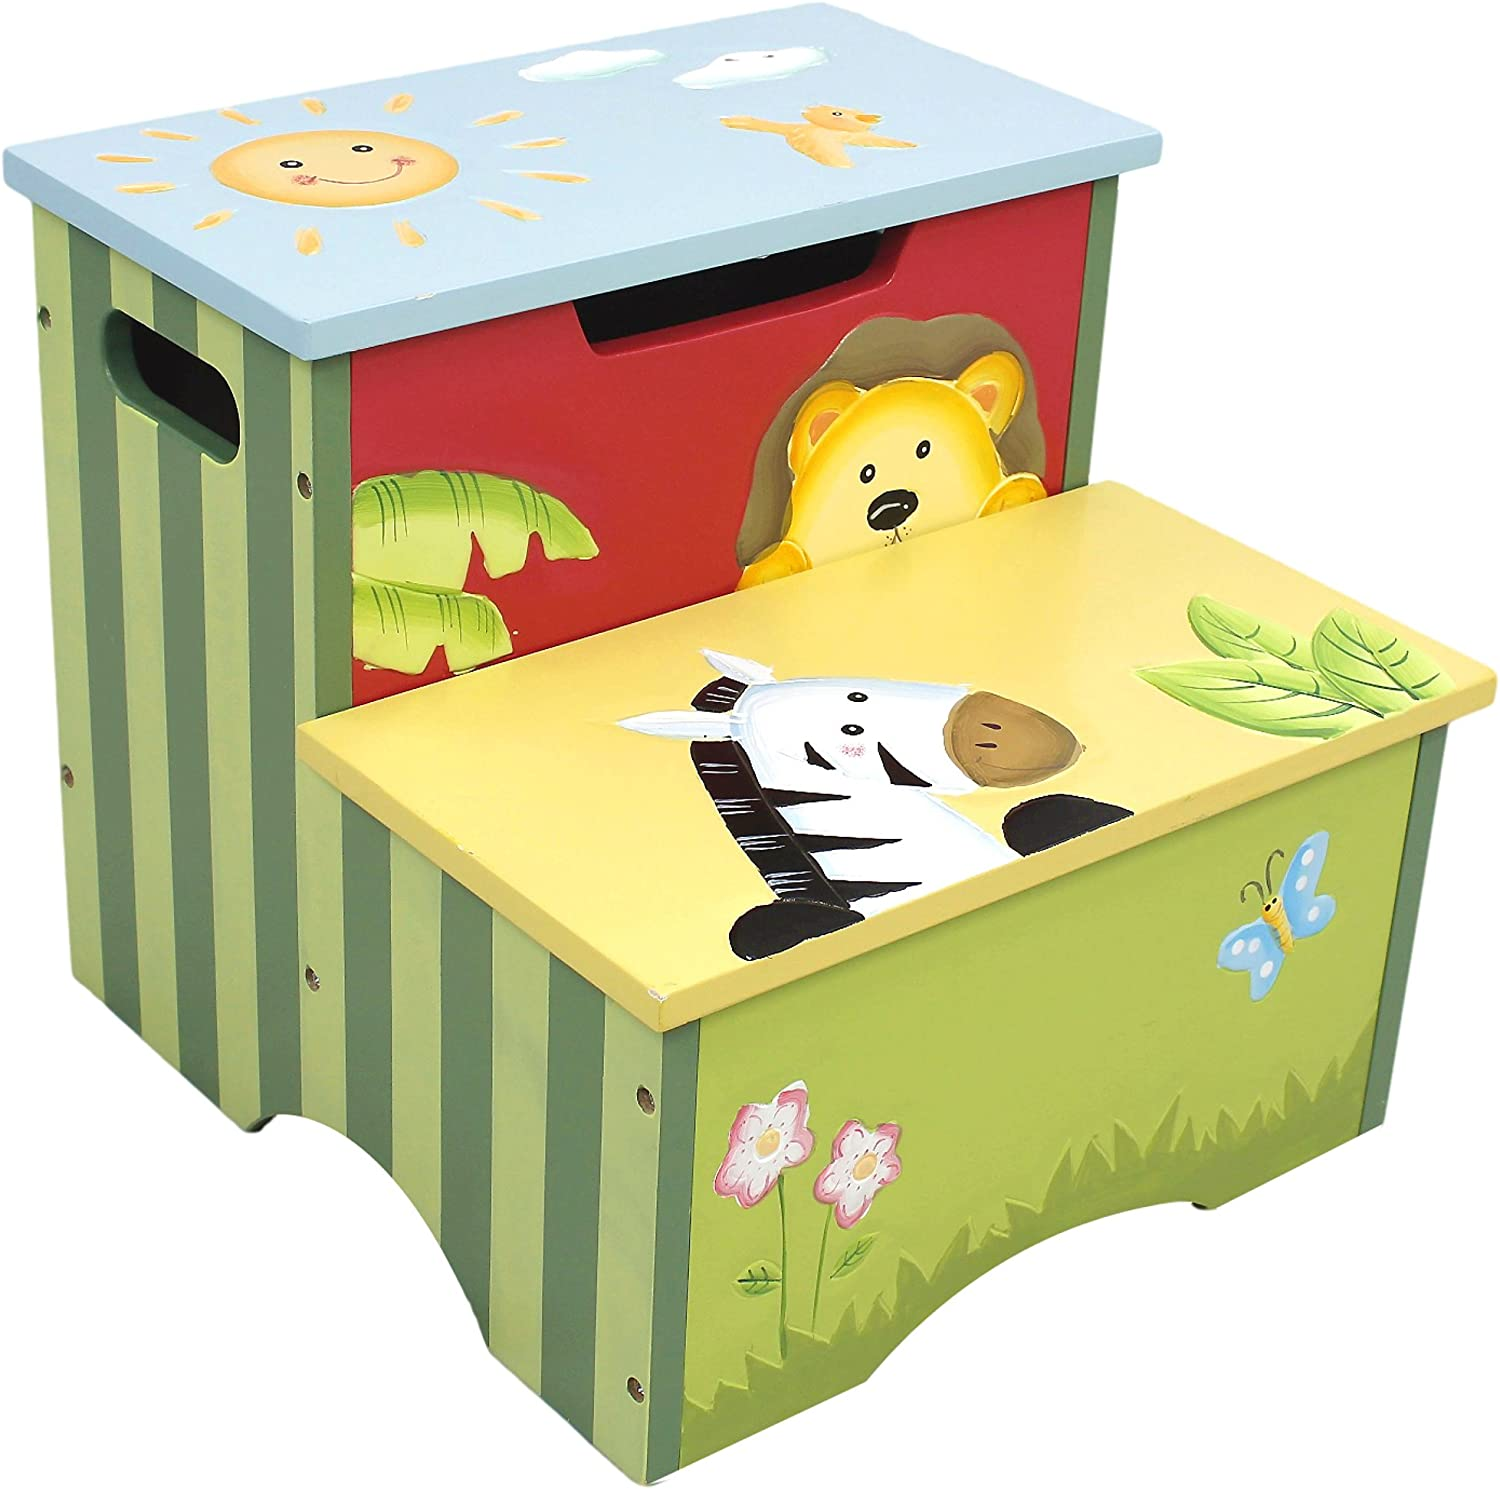 Fantasy Fields - Sunny Safari Animals Thematic Kids Wooden Step Stool with Storage   Imagination Inspiring Hand Crafted & Hand Painted Details   Non-Toxic, Lead Free Water-Based Paint